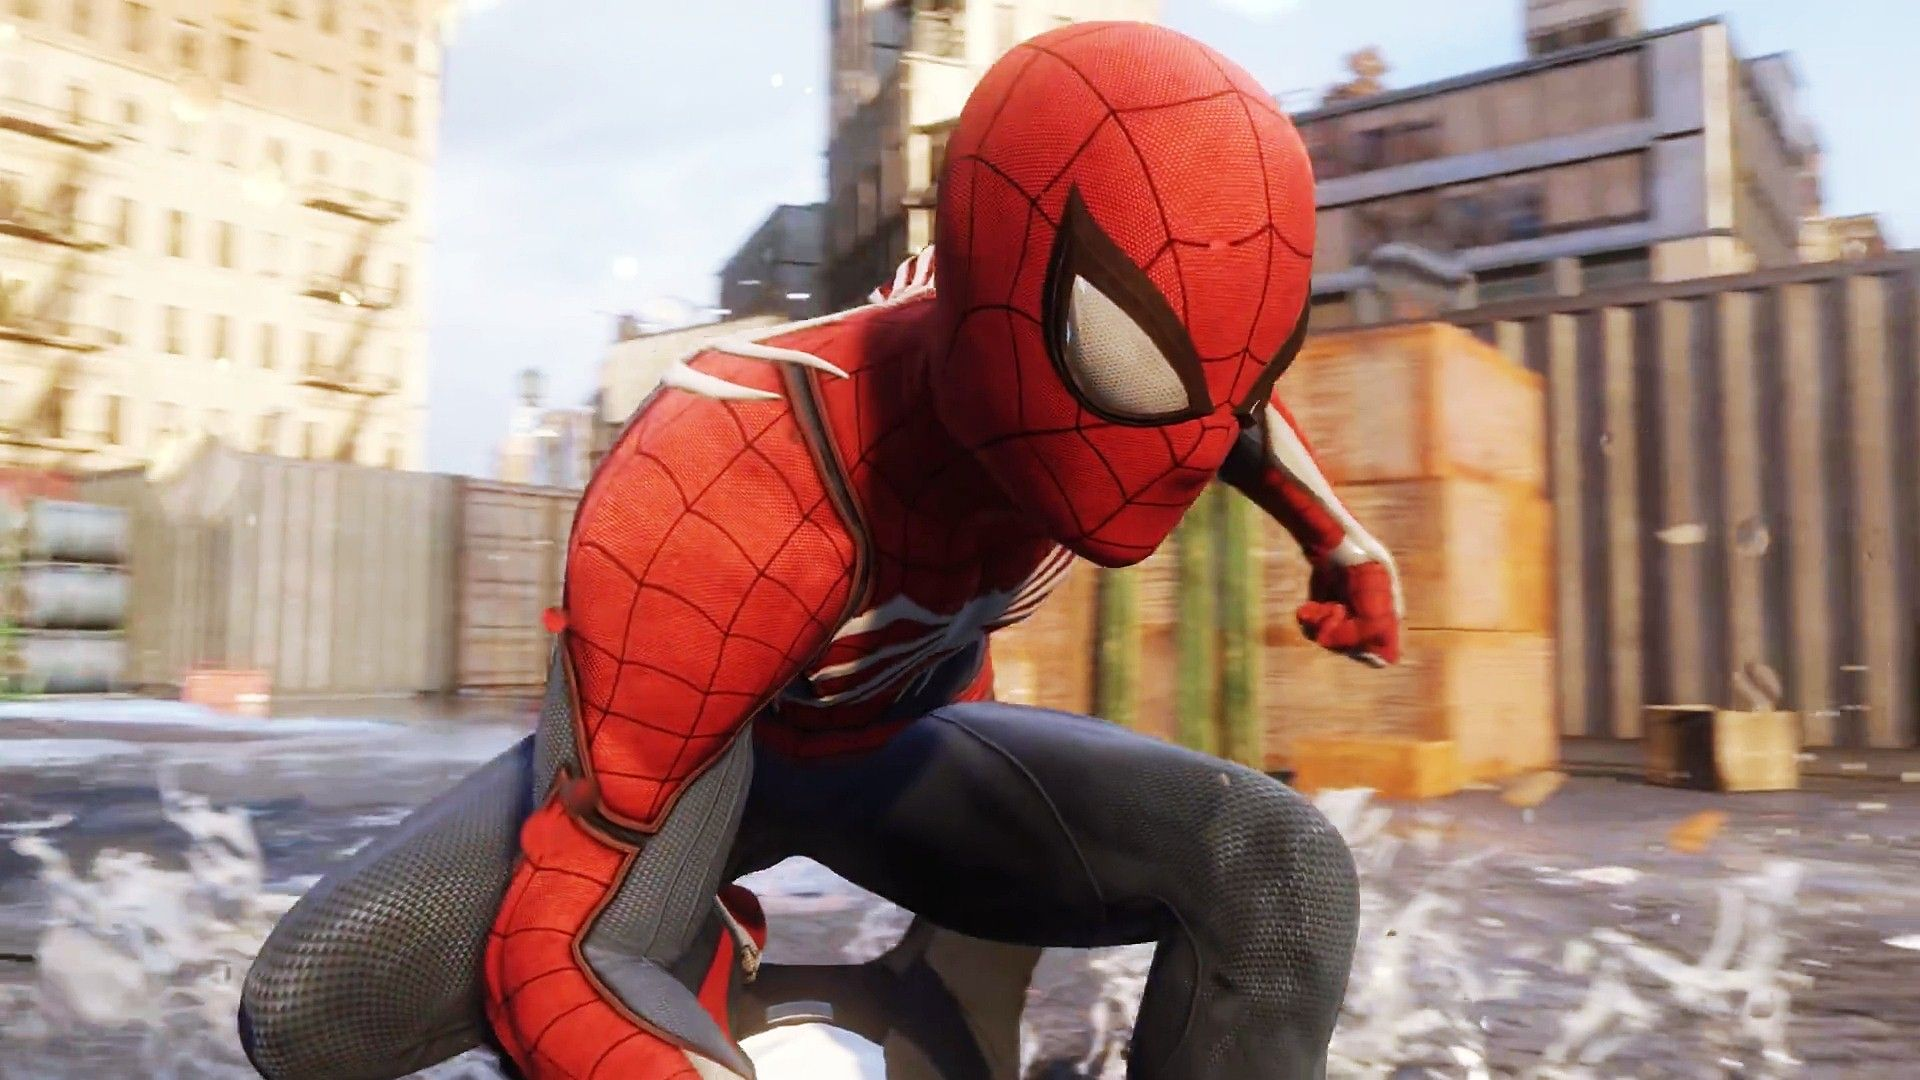 Spider Man Ps4 Hd Wallpapers Spiderman Ps4 Wallpaper Images